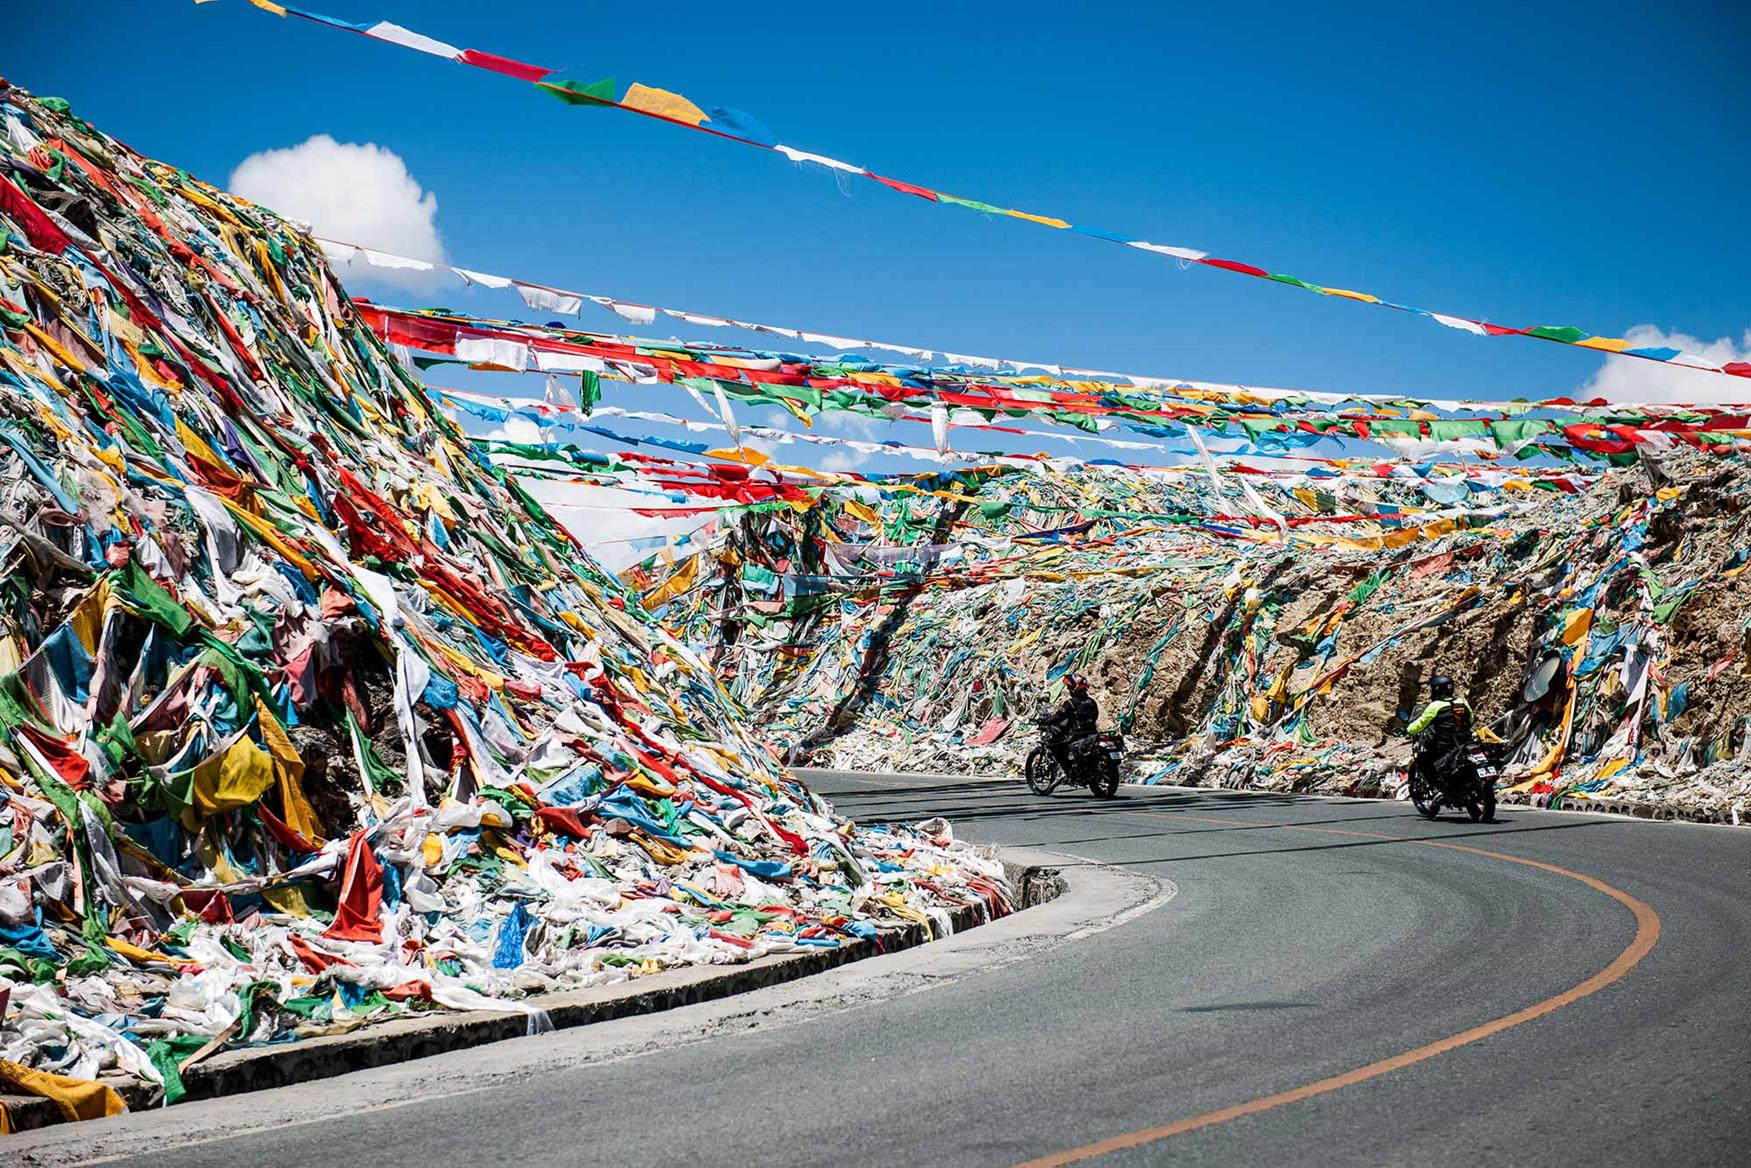 Prayer flags line the road